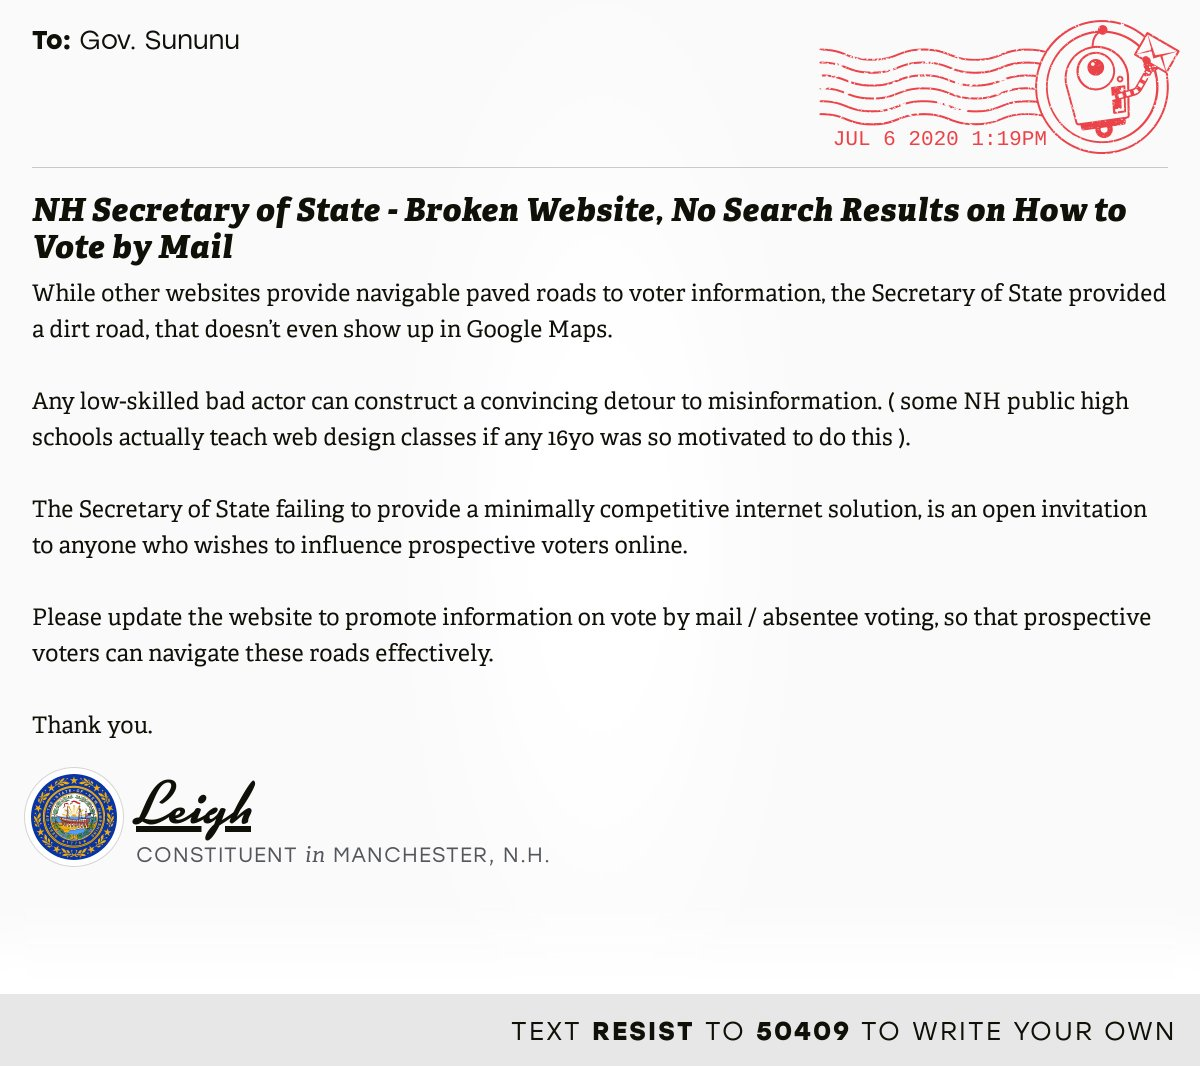 """📬 I delivered """"NH Secretary of State - Broken Website, No Search Results on How to Vote by Mail"""" from Leigh, a constituent in Manchester, N.H., to @GovChrisSununu  #NHpolitics #fitn #VoteByMail  📝 Write your own:"""